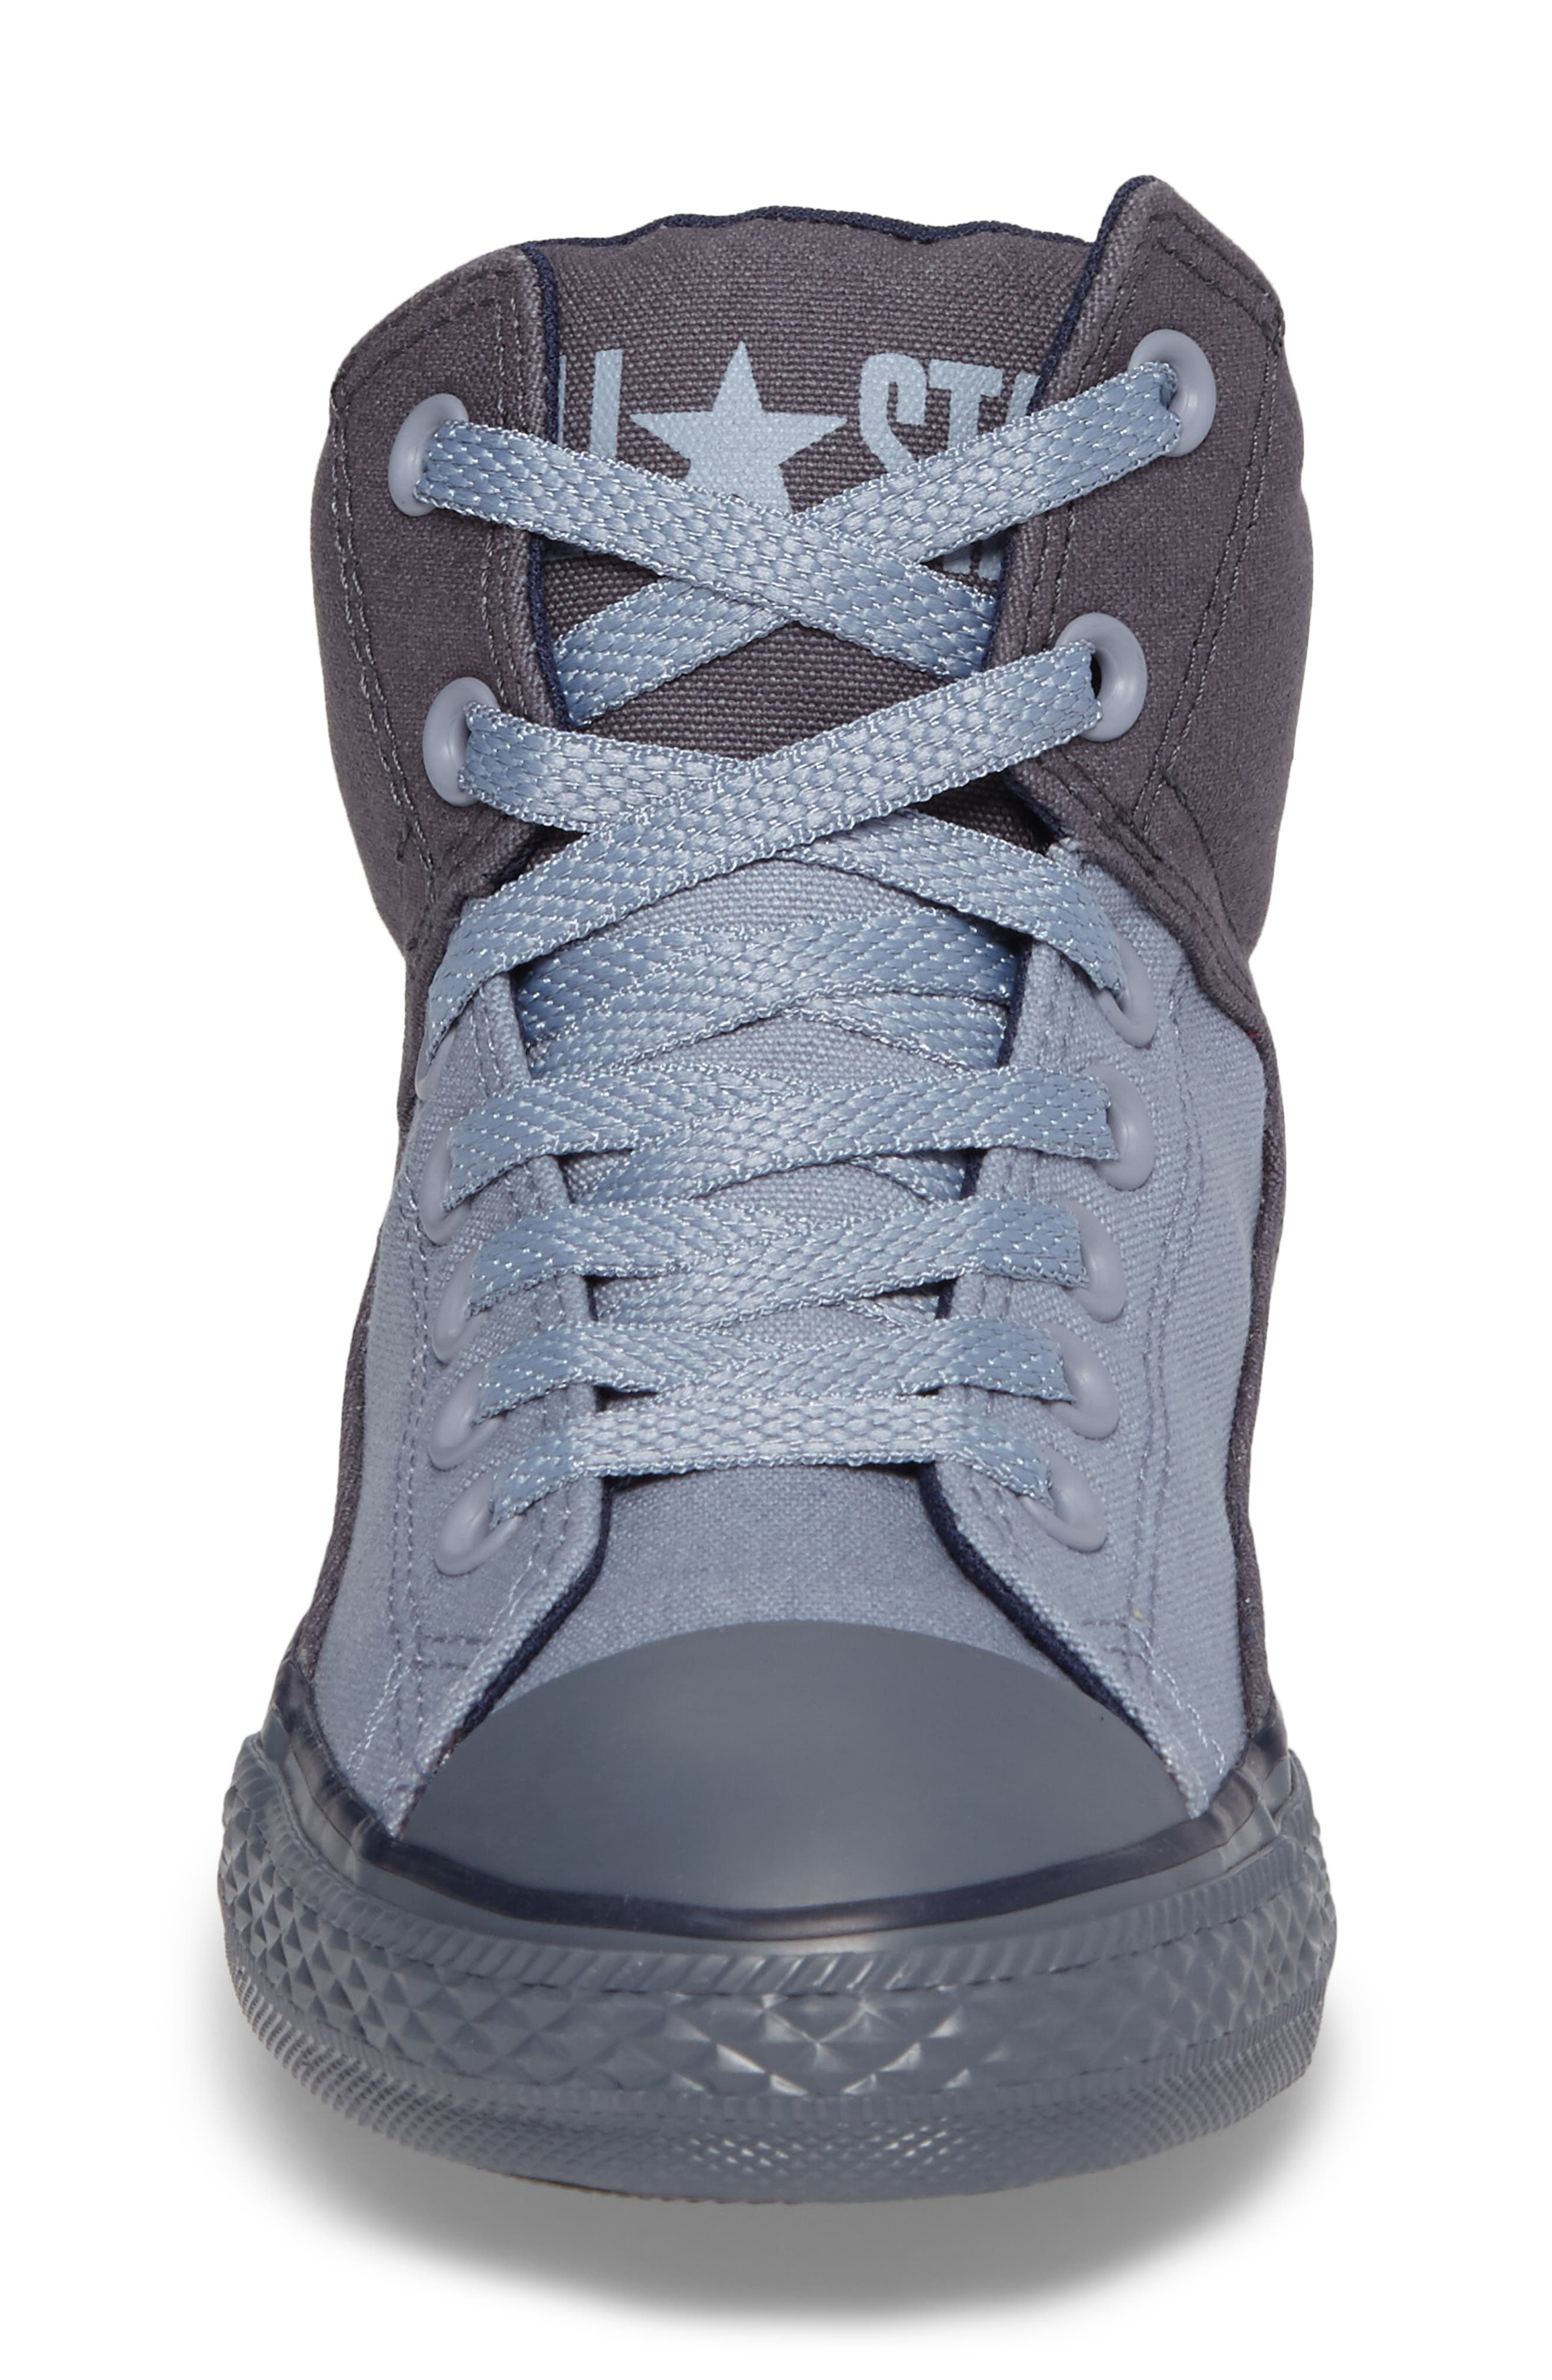 Chuck Taylor<sup>®</sup> All Star<sup>®</sup> High Street High Top Sneaker,                             Alternate thumbnail 4, color,                             Sharkskin Canvas